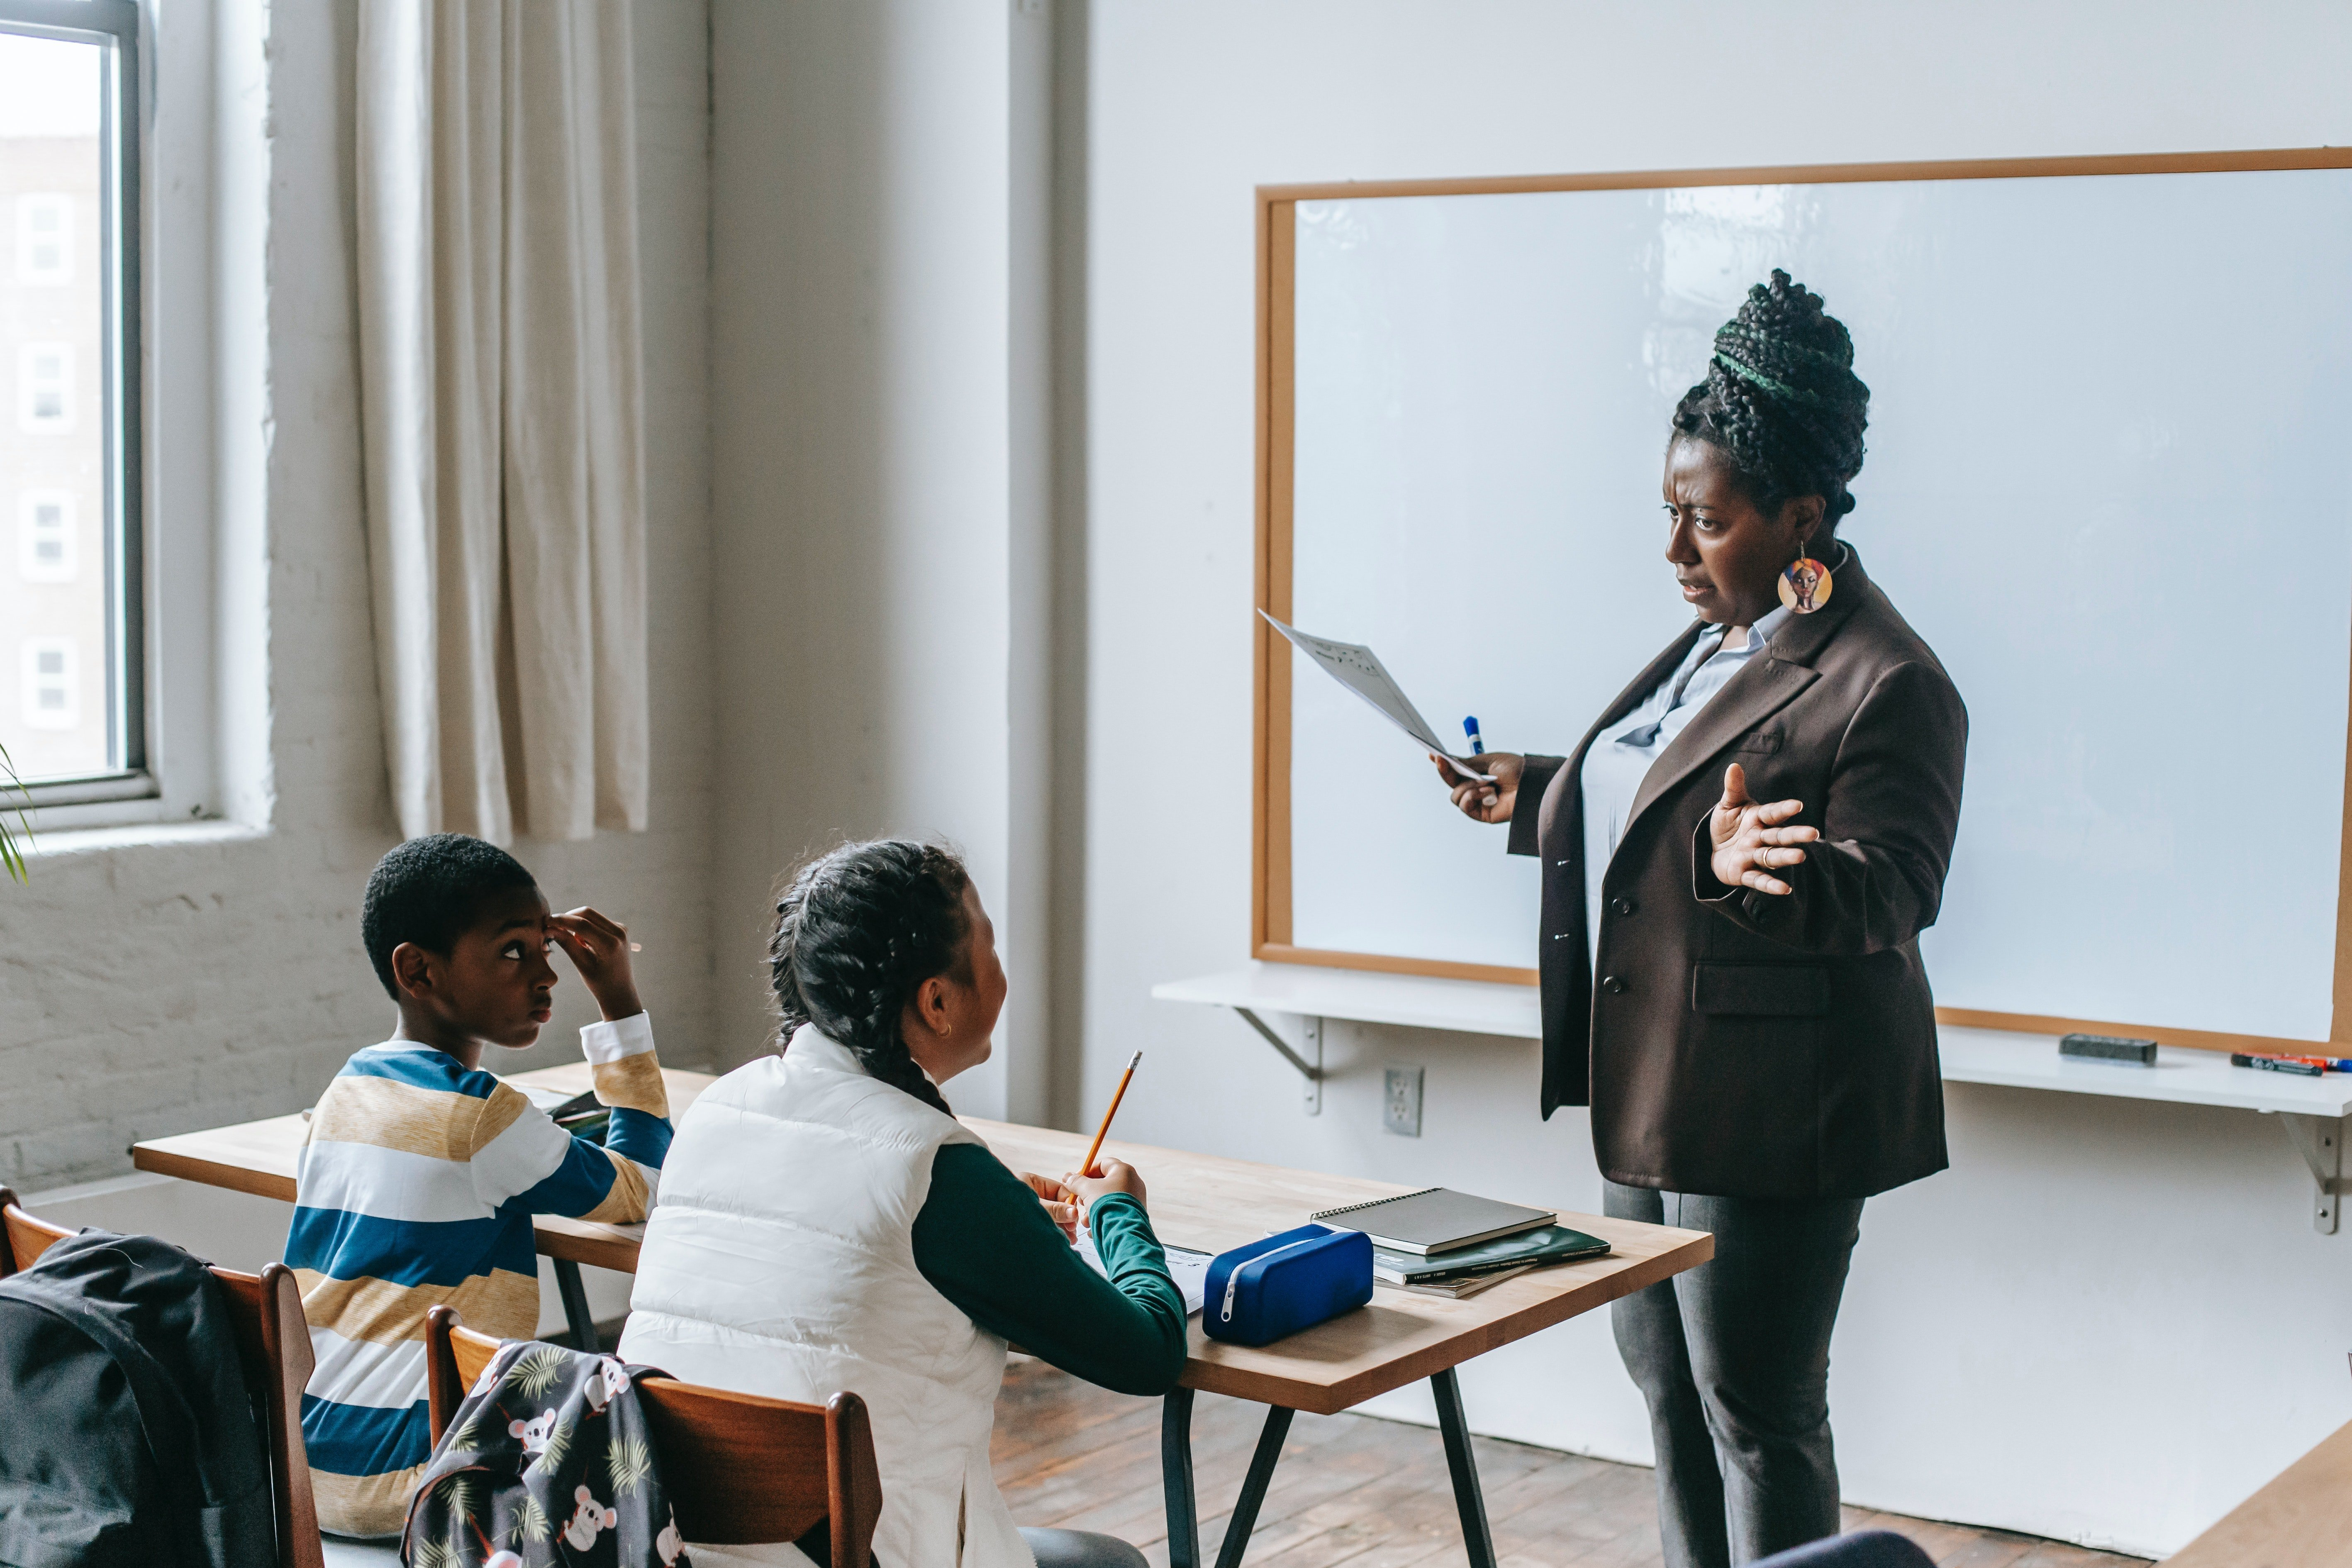 A teacher talking to students in class.   Photo: Pexels/Katerina Holmes